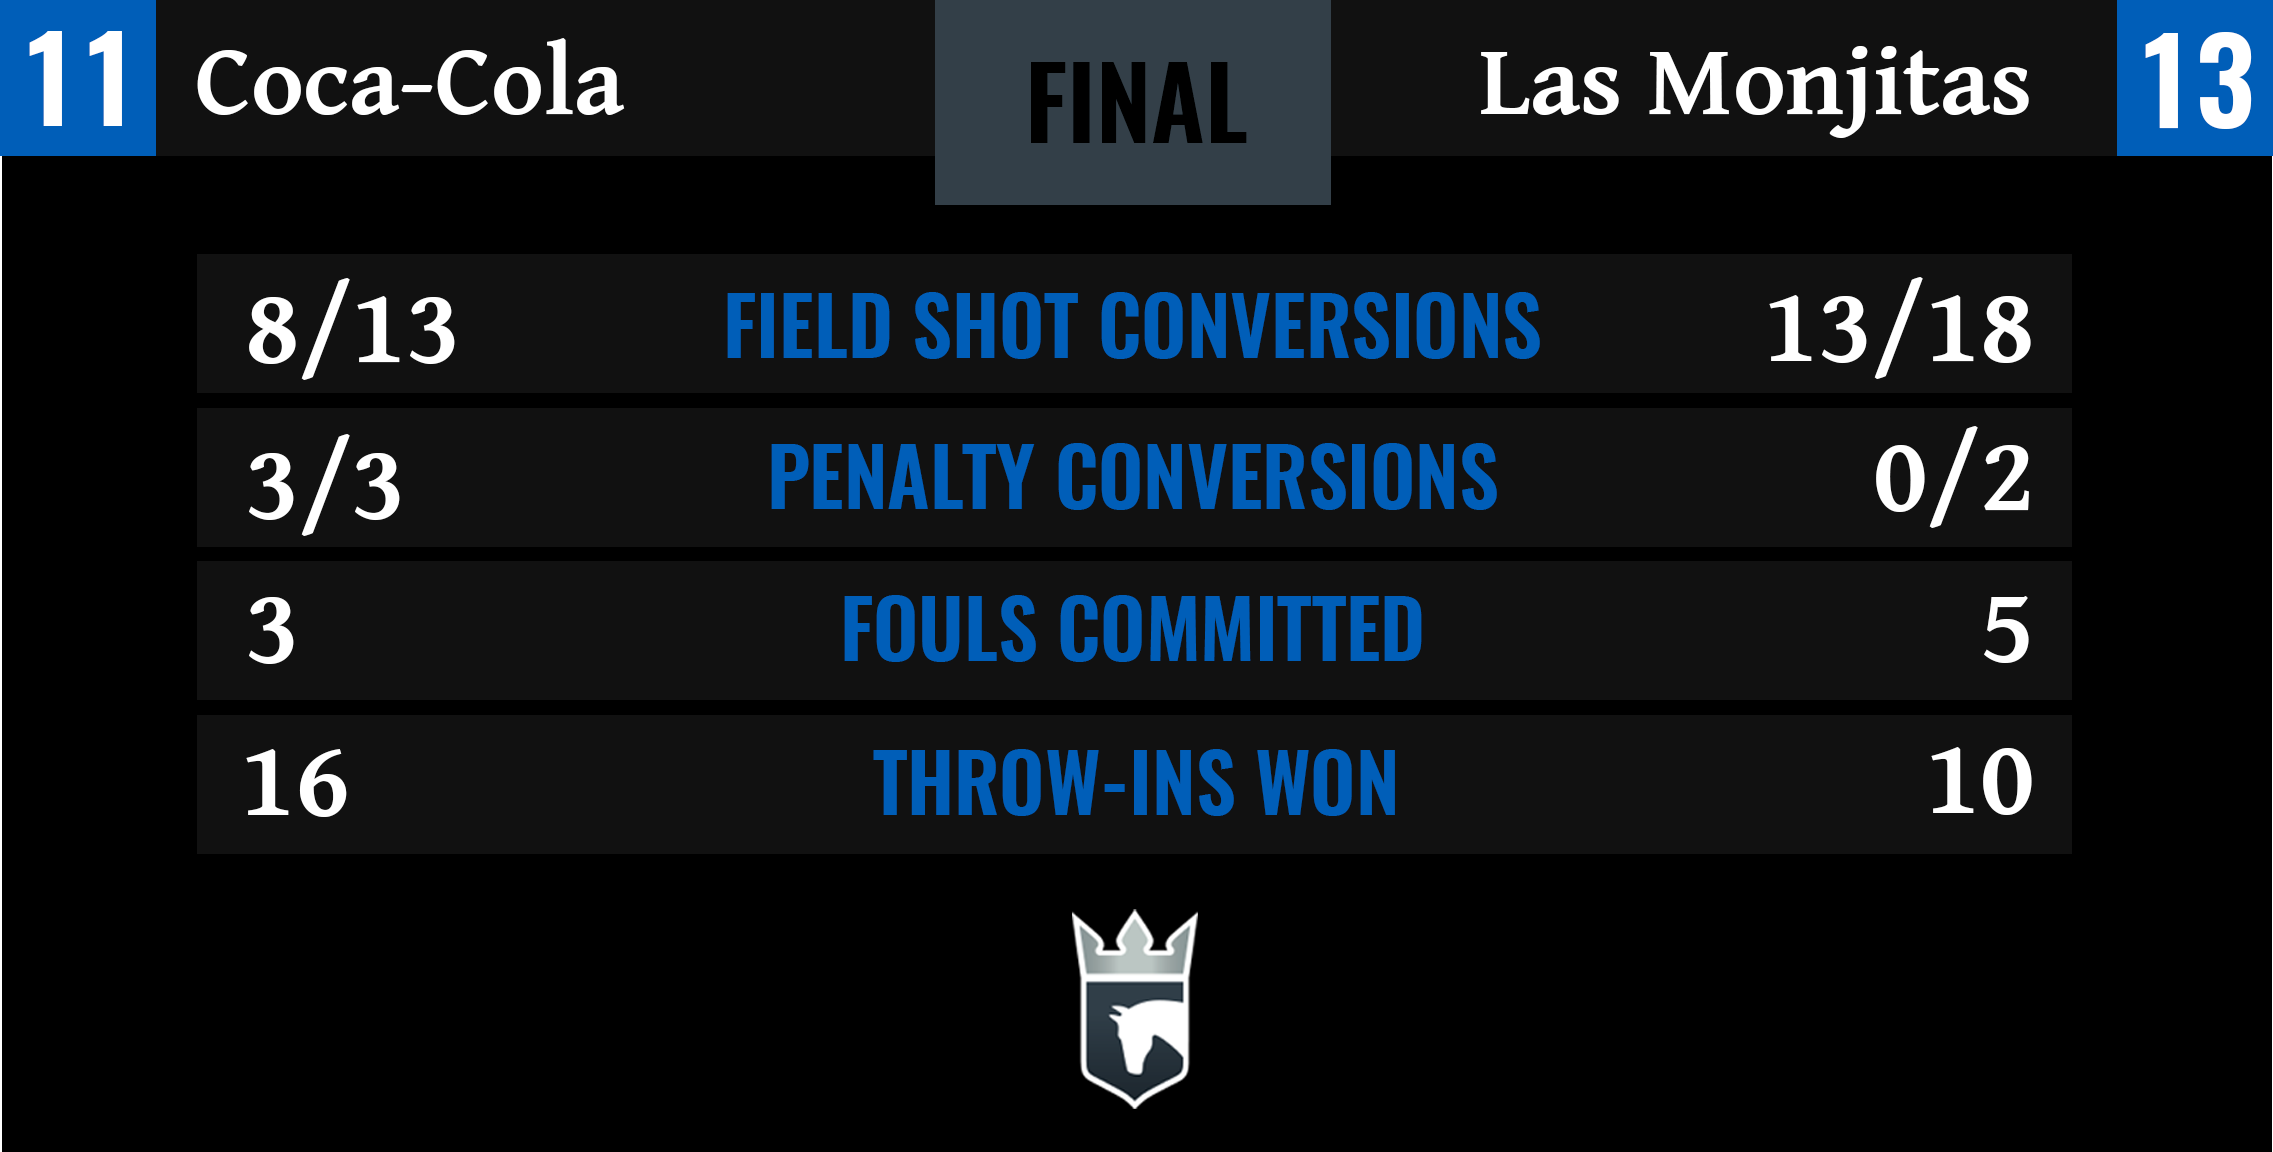 Coca-Cola vs Las Monjitas Final Stats